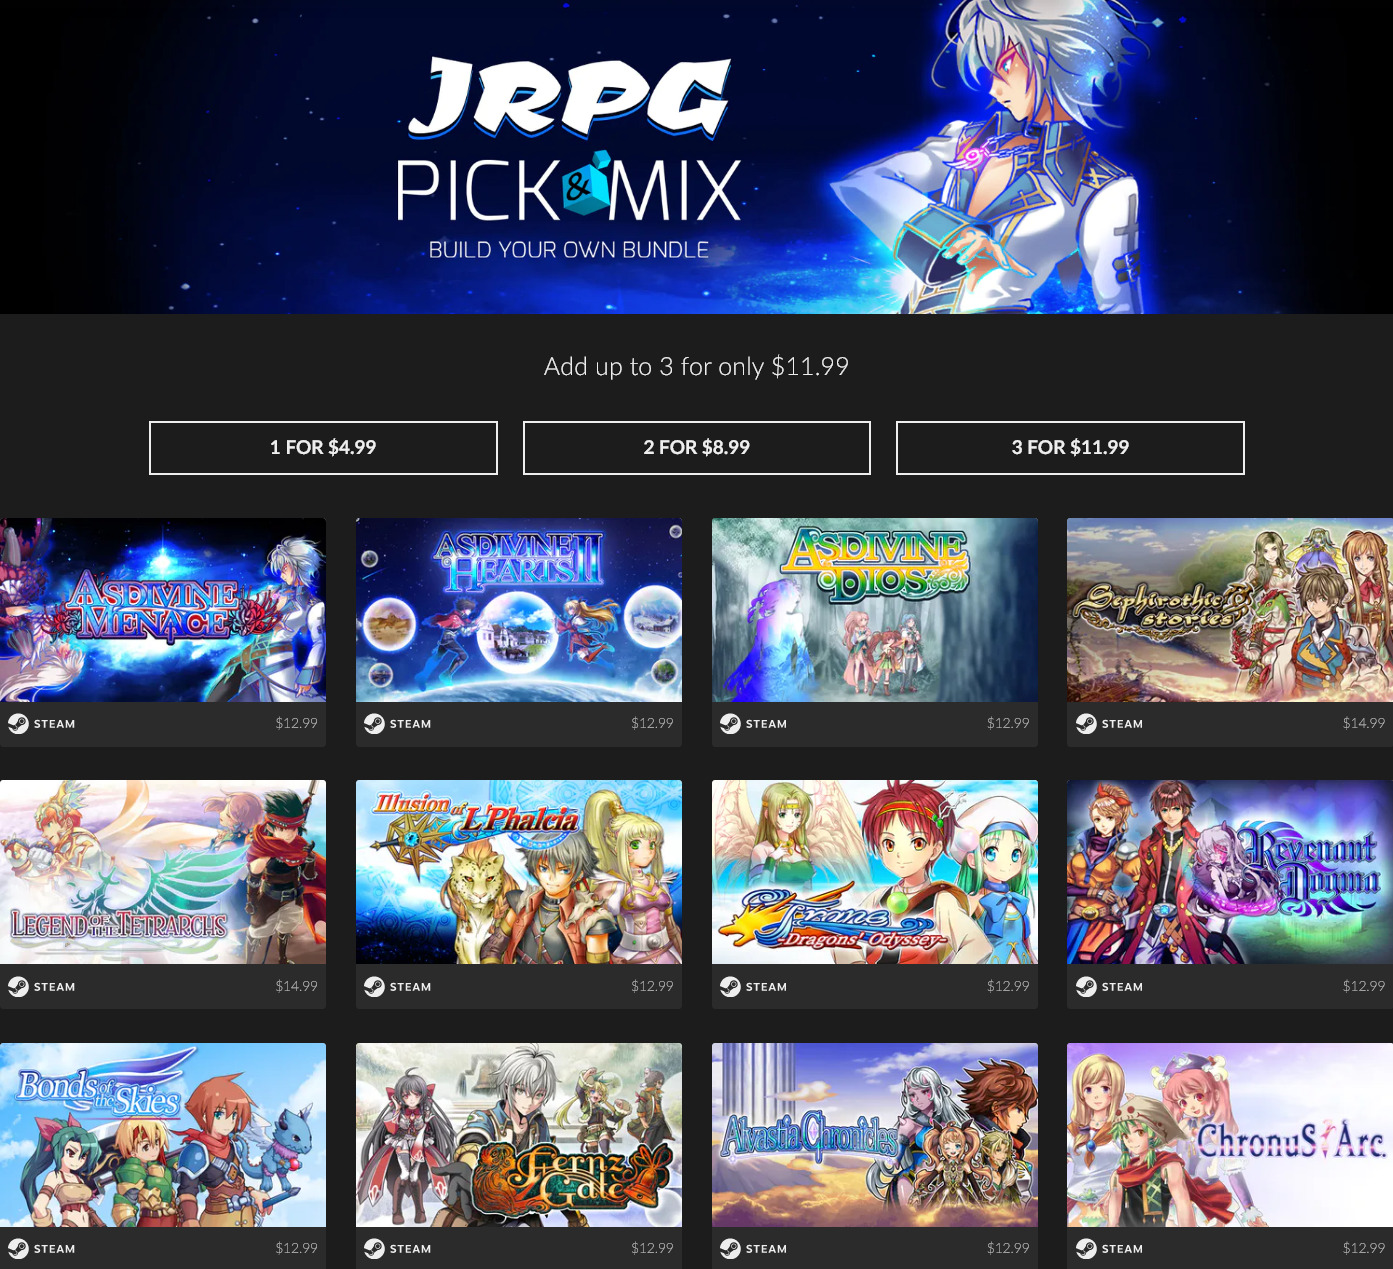 Screenshot_2020-07-03 Fanatical JRPG Pick and Mix Build your own Bundle.jpg